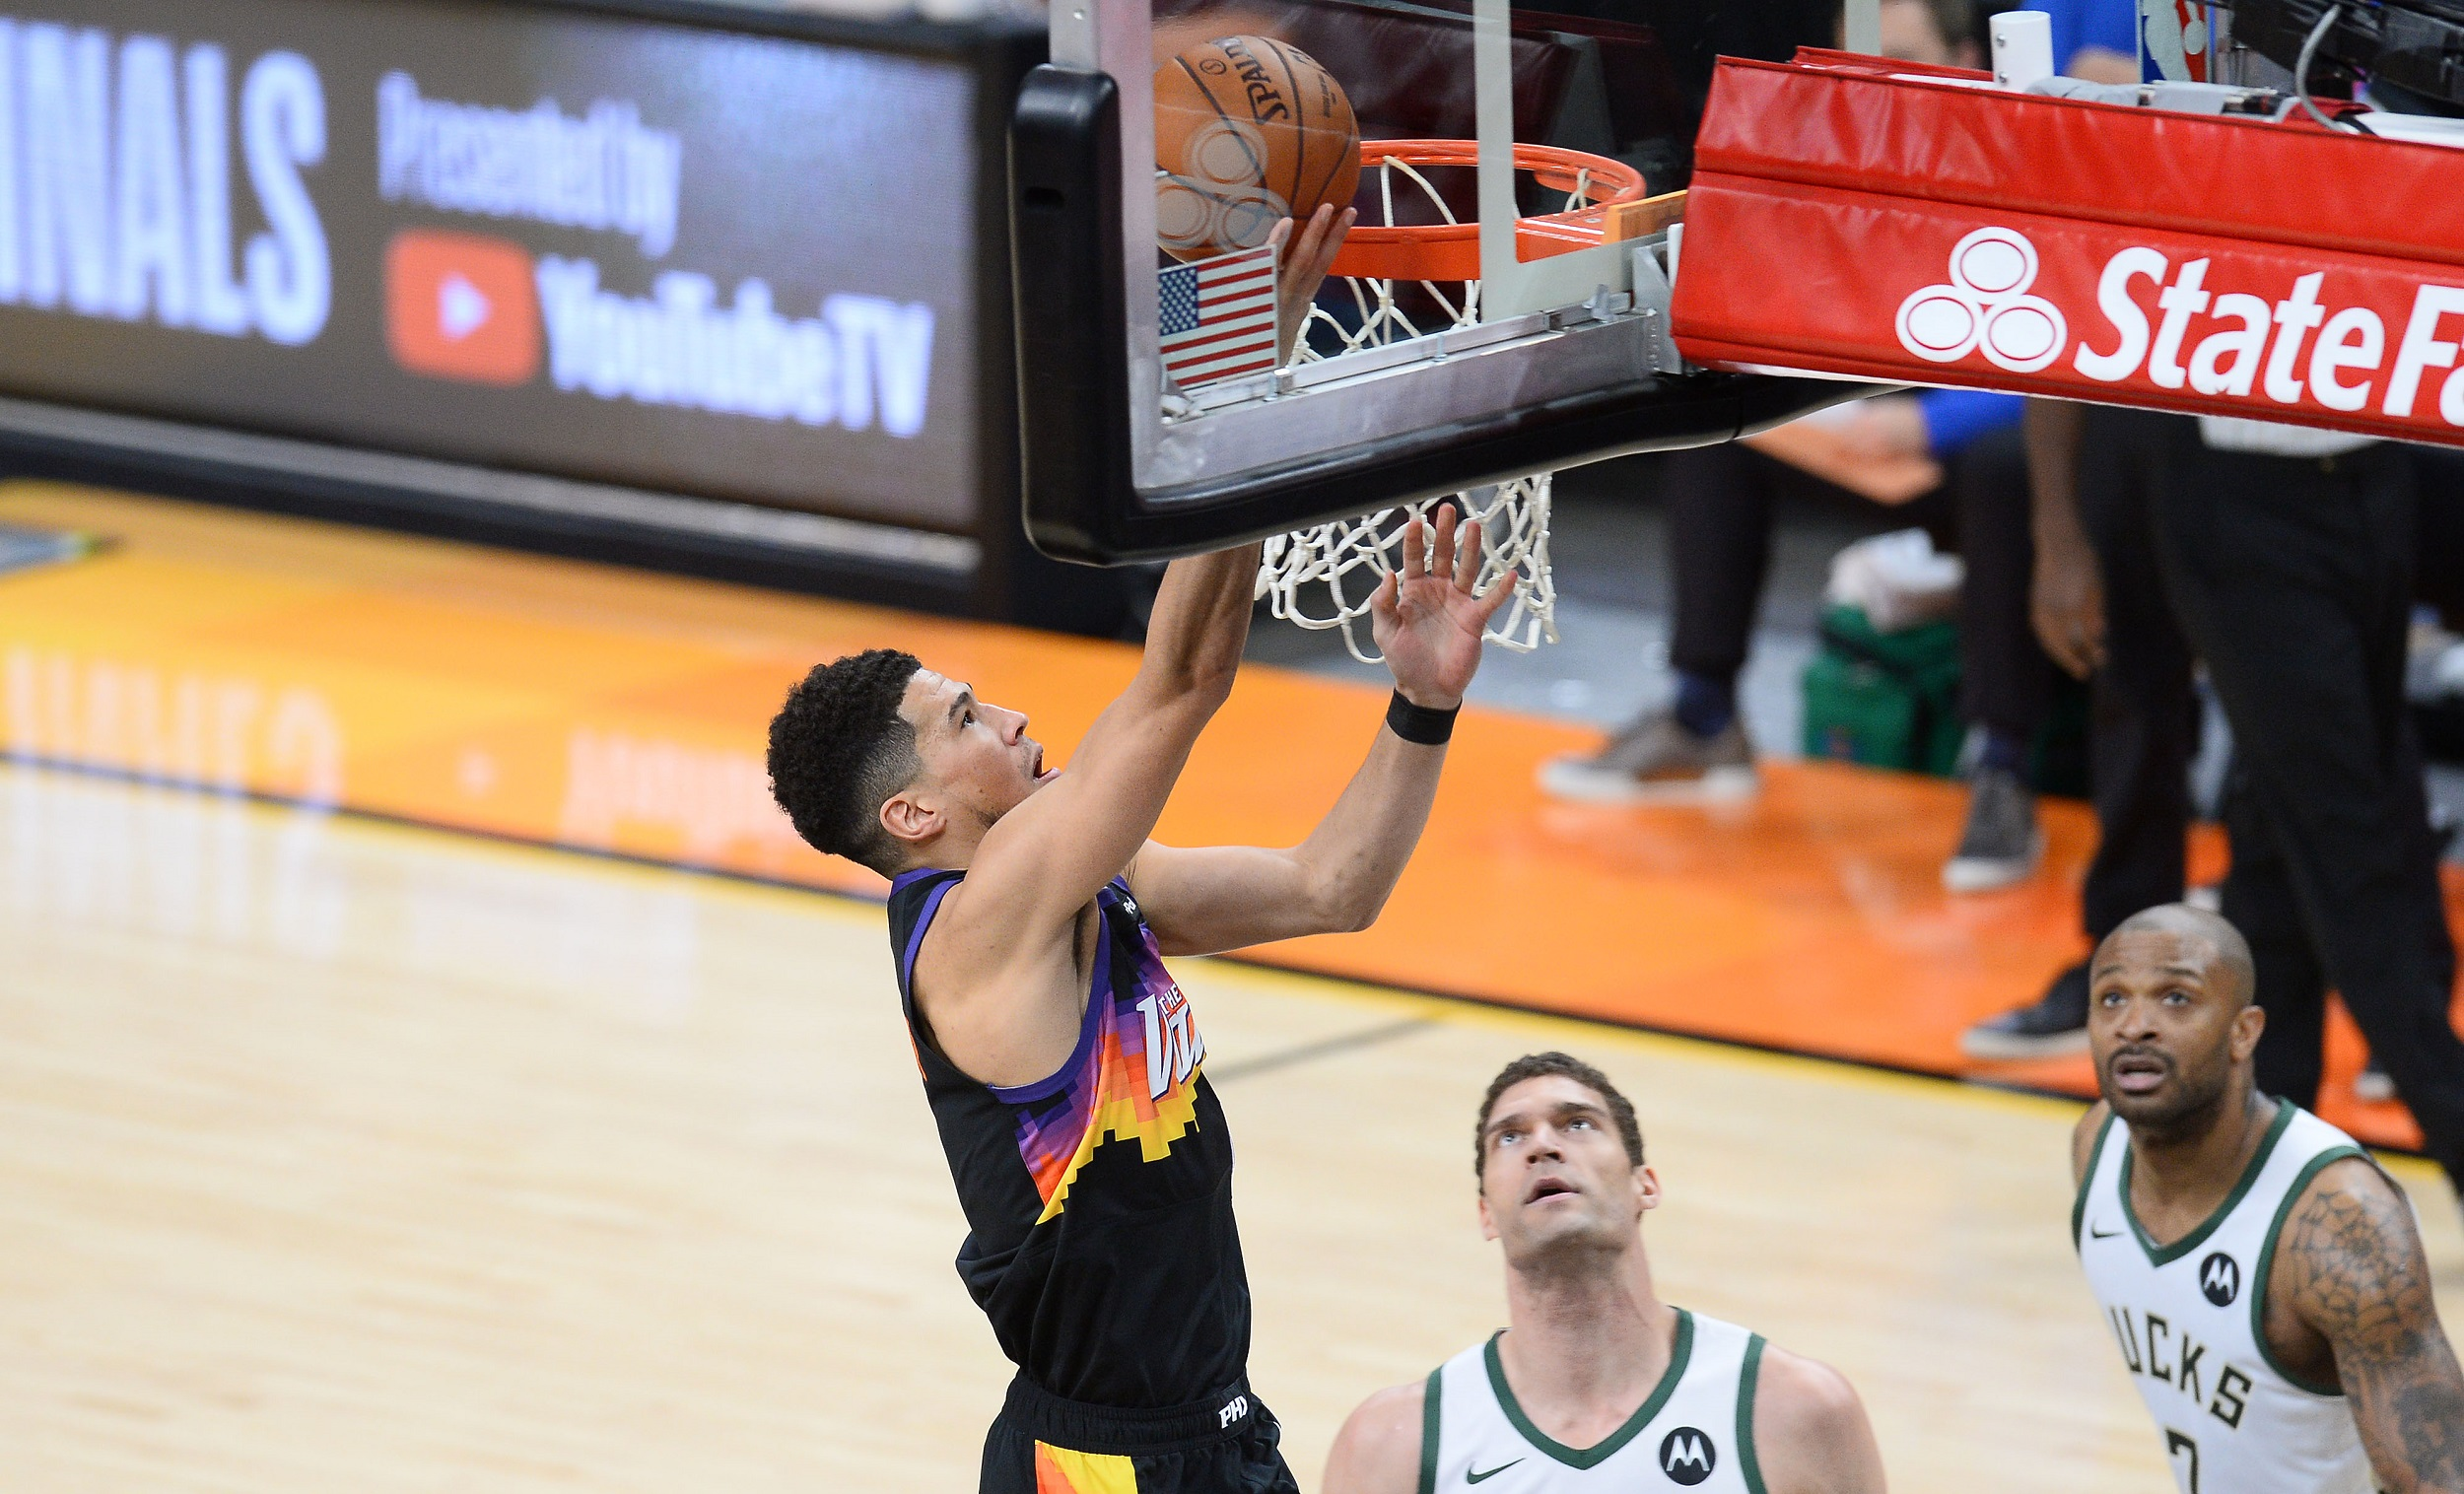 Devin Booker scores on the drive